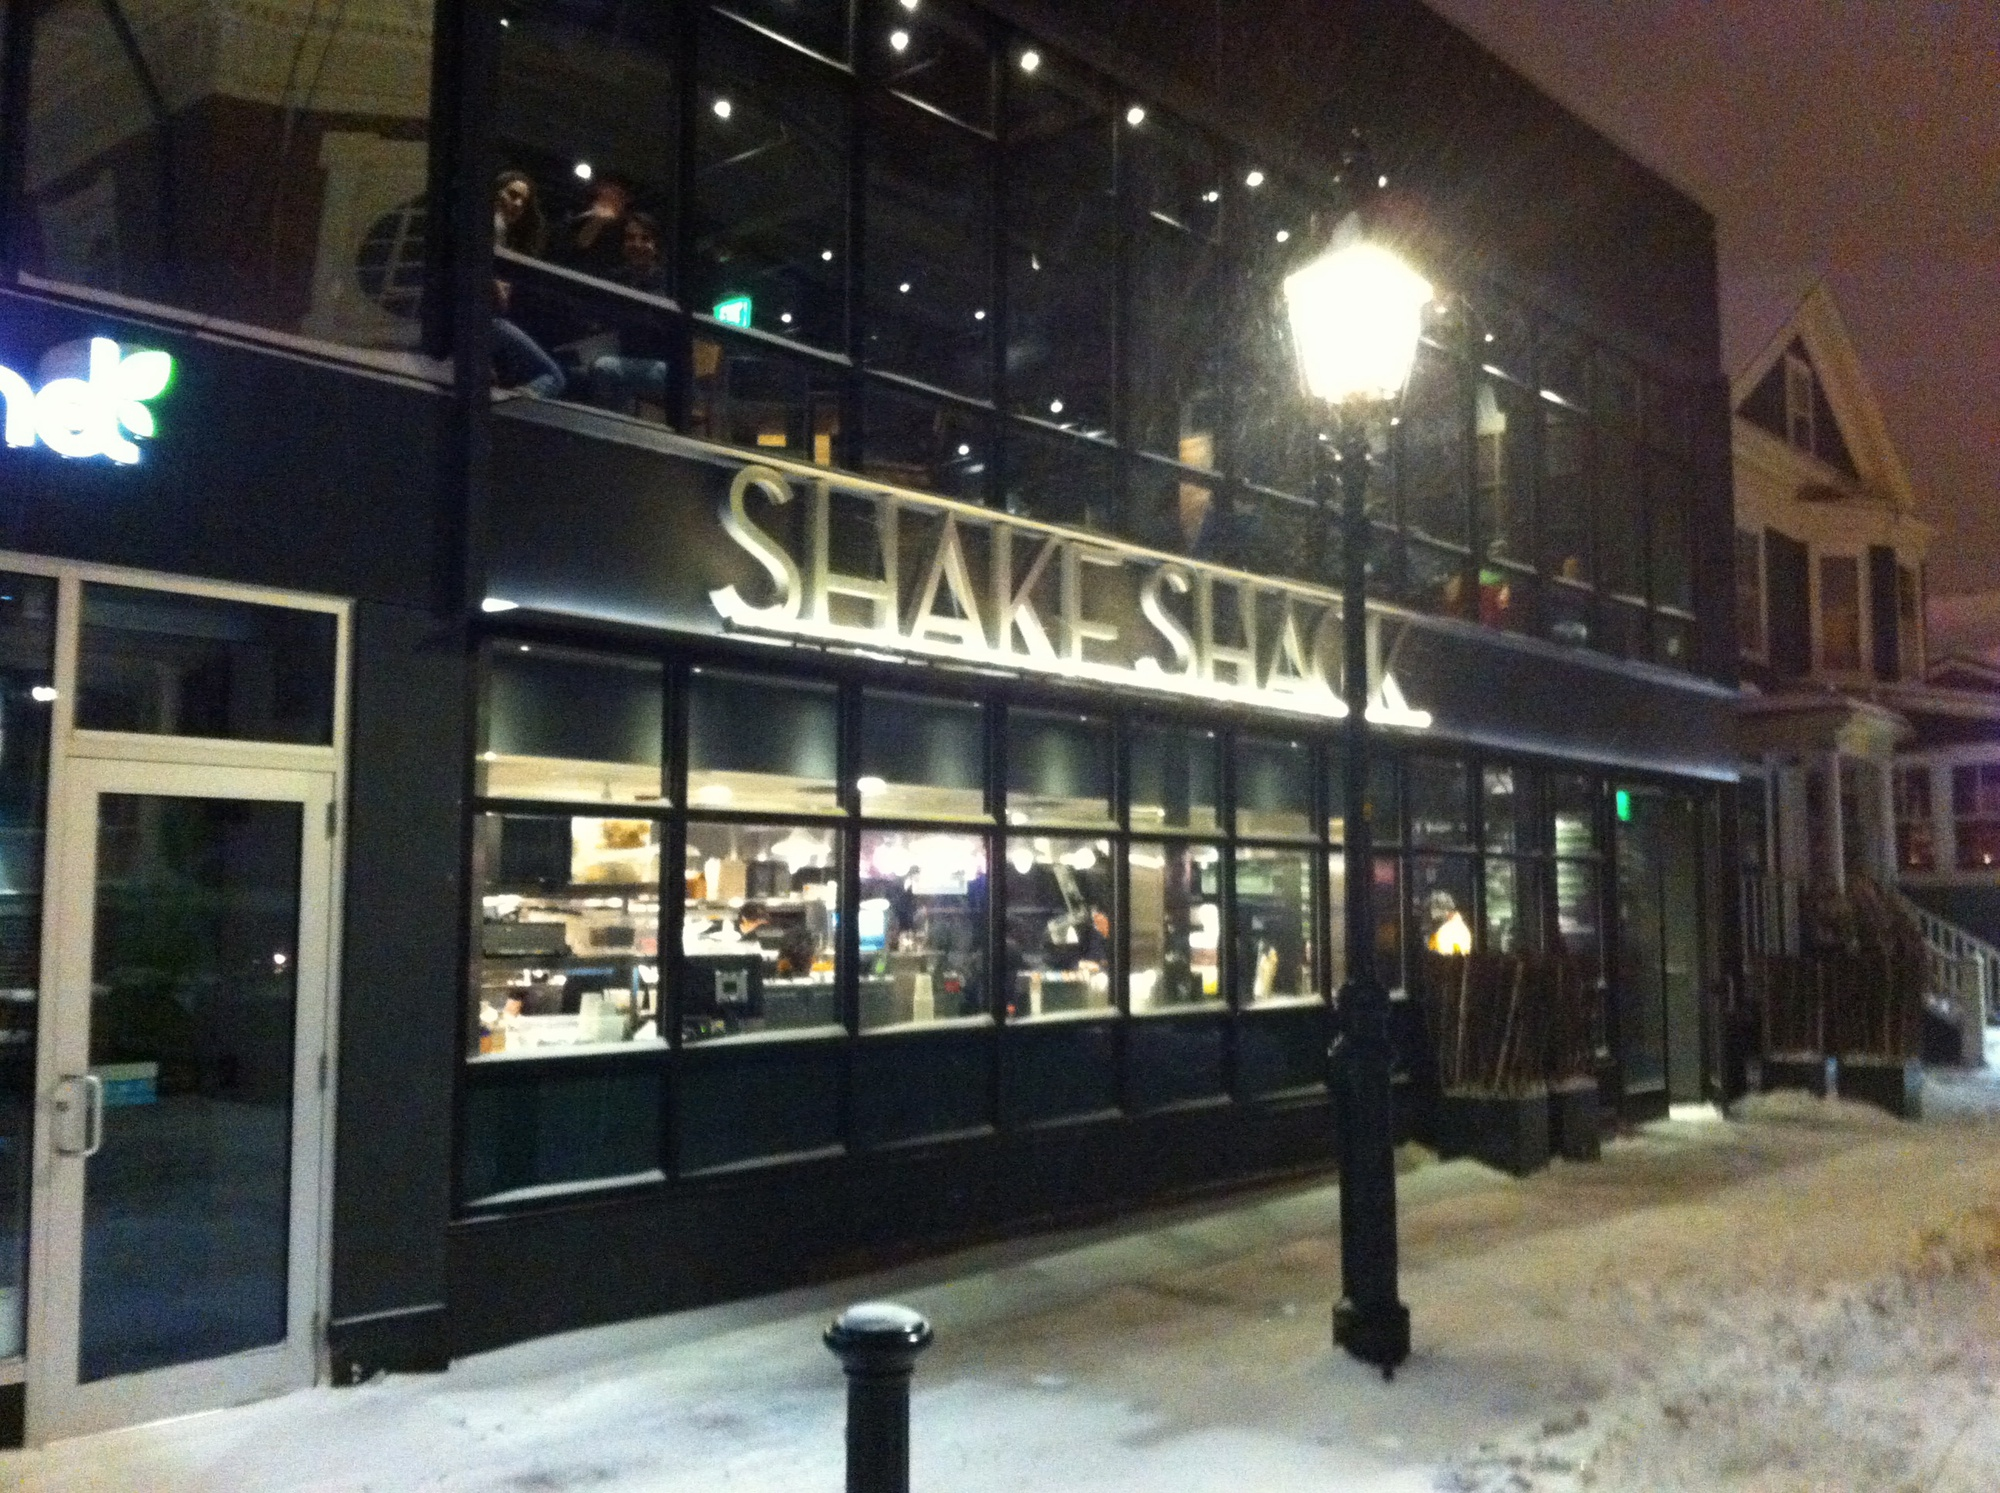 Shake Shack, Harvard Square's newest burger destination, remains open for its first full day of business Thursday despite a major winter storm impacting New England.